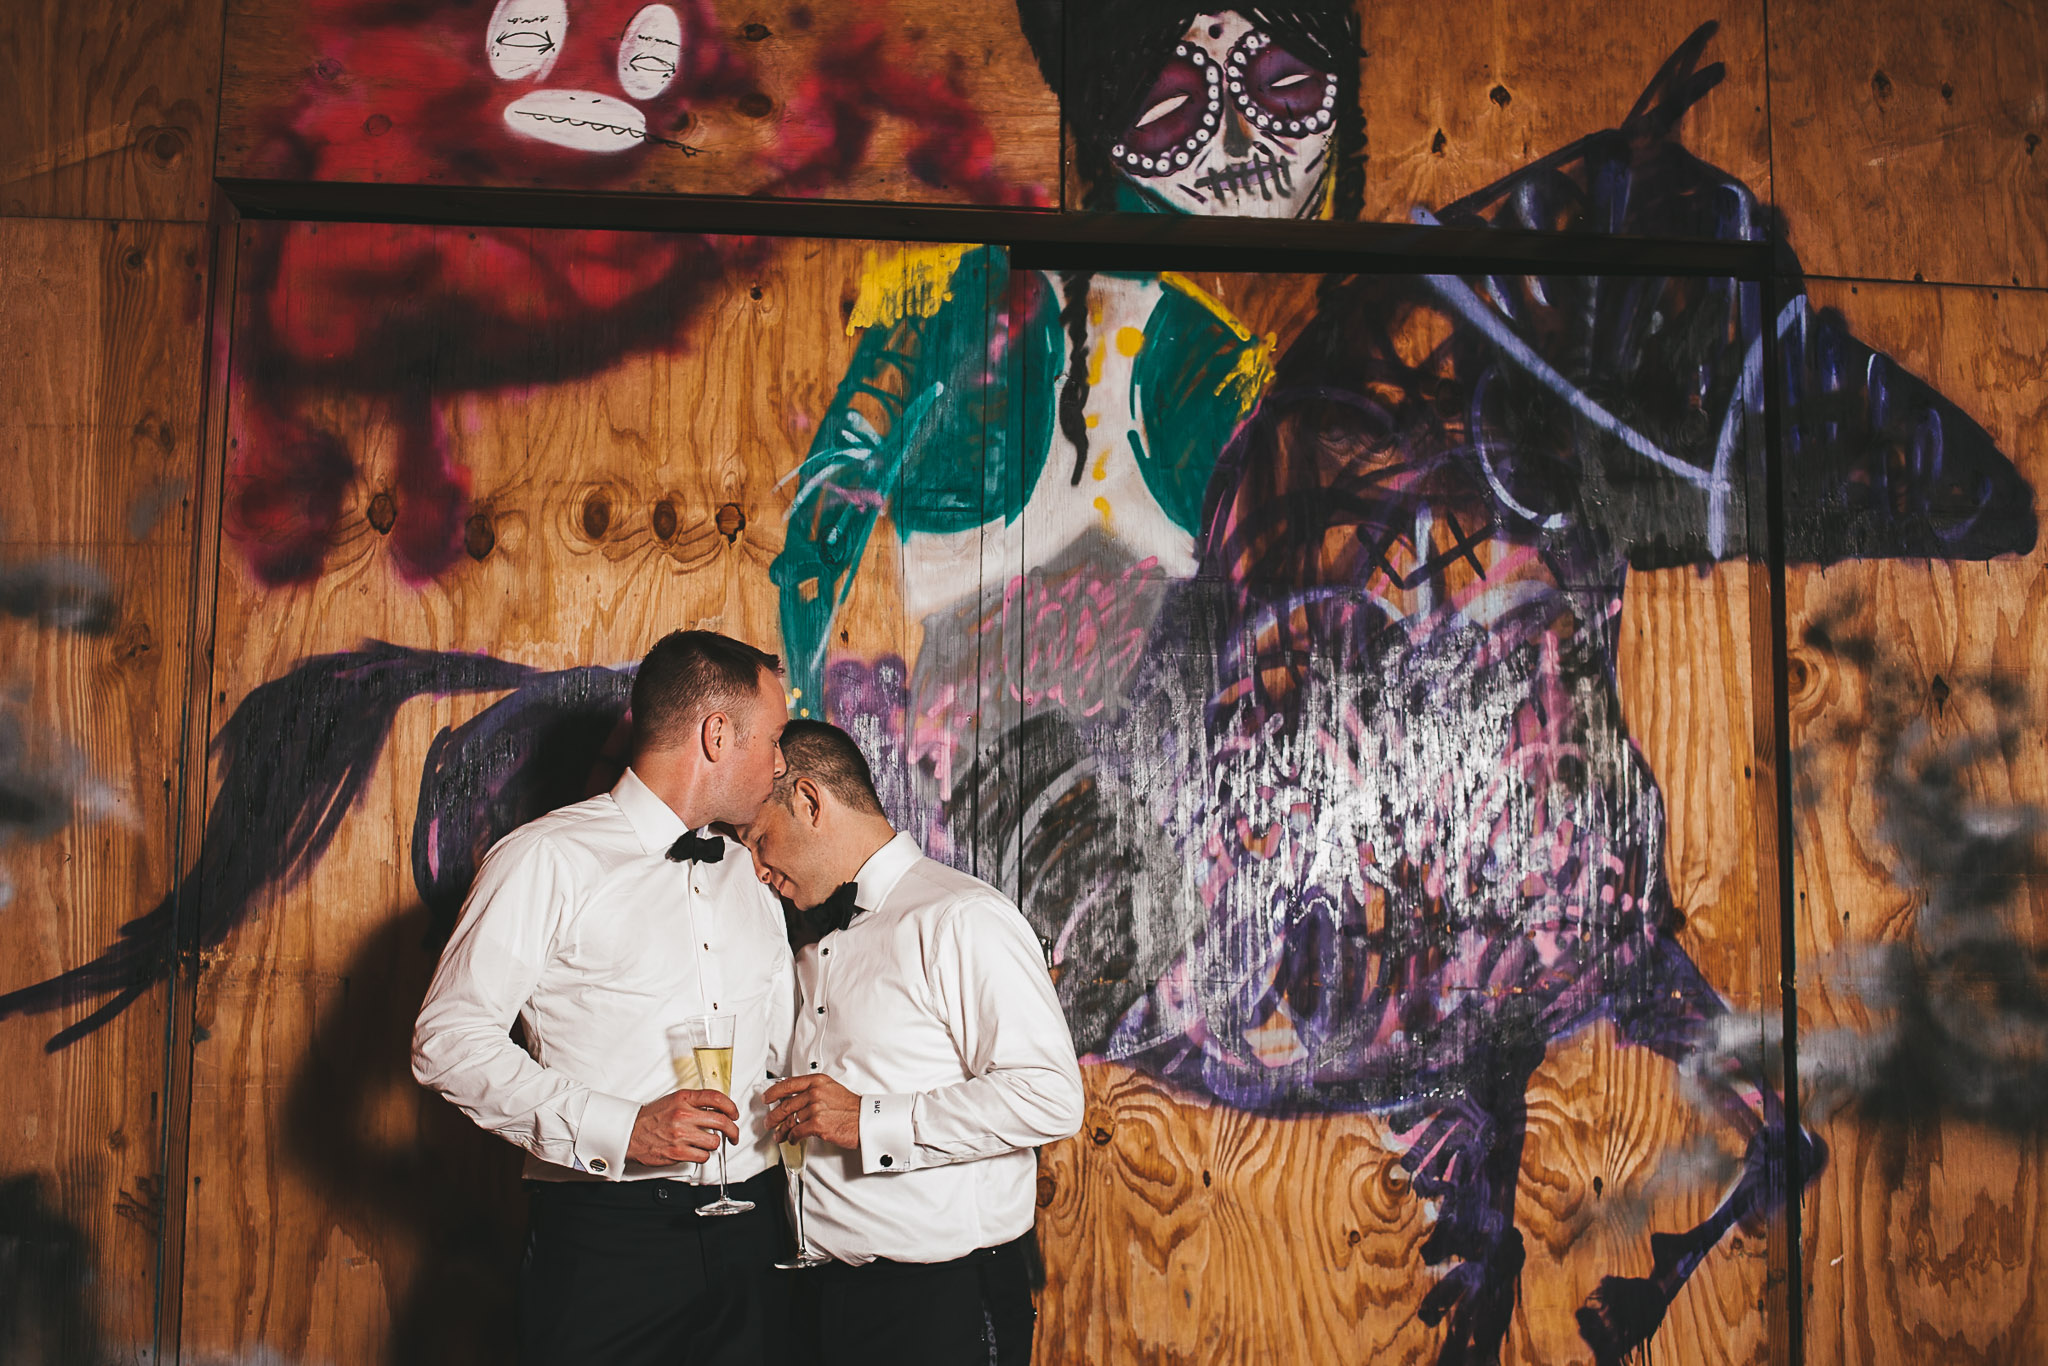 Brooklyn Wedding Photographer, Two Grooms in front of a colorful graffiti mural